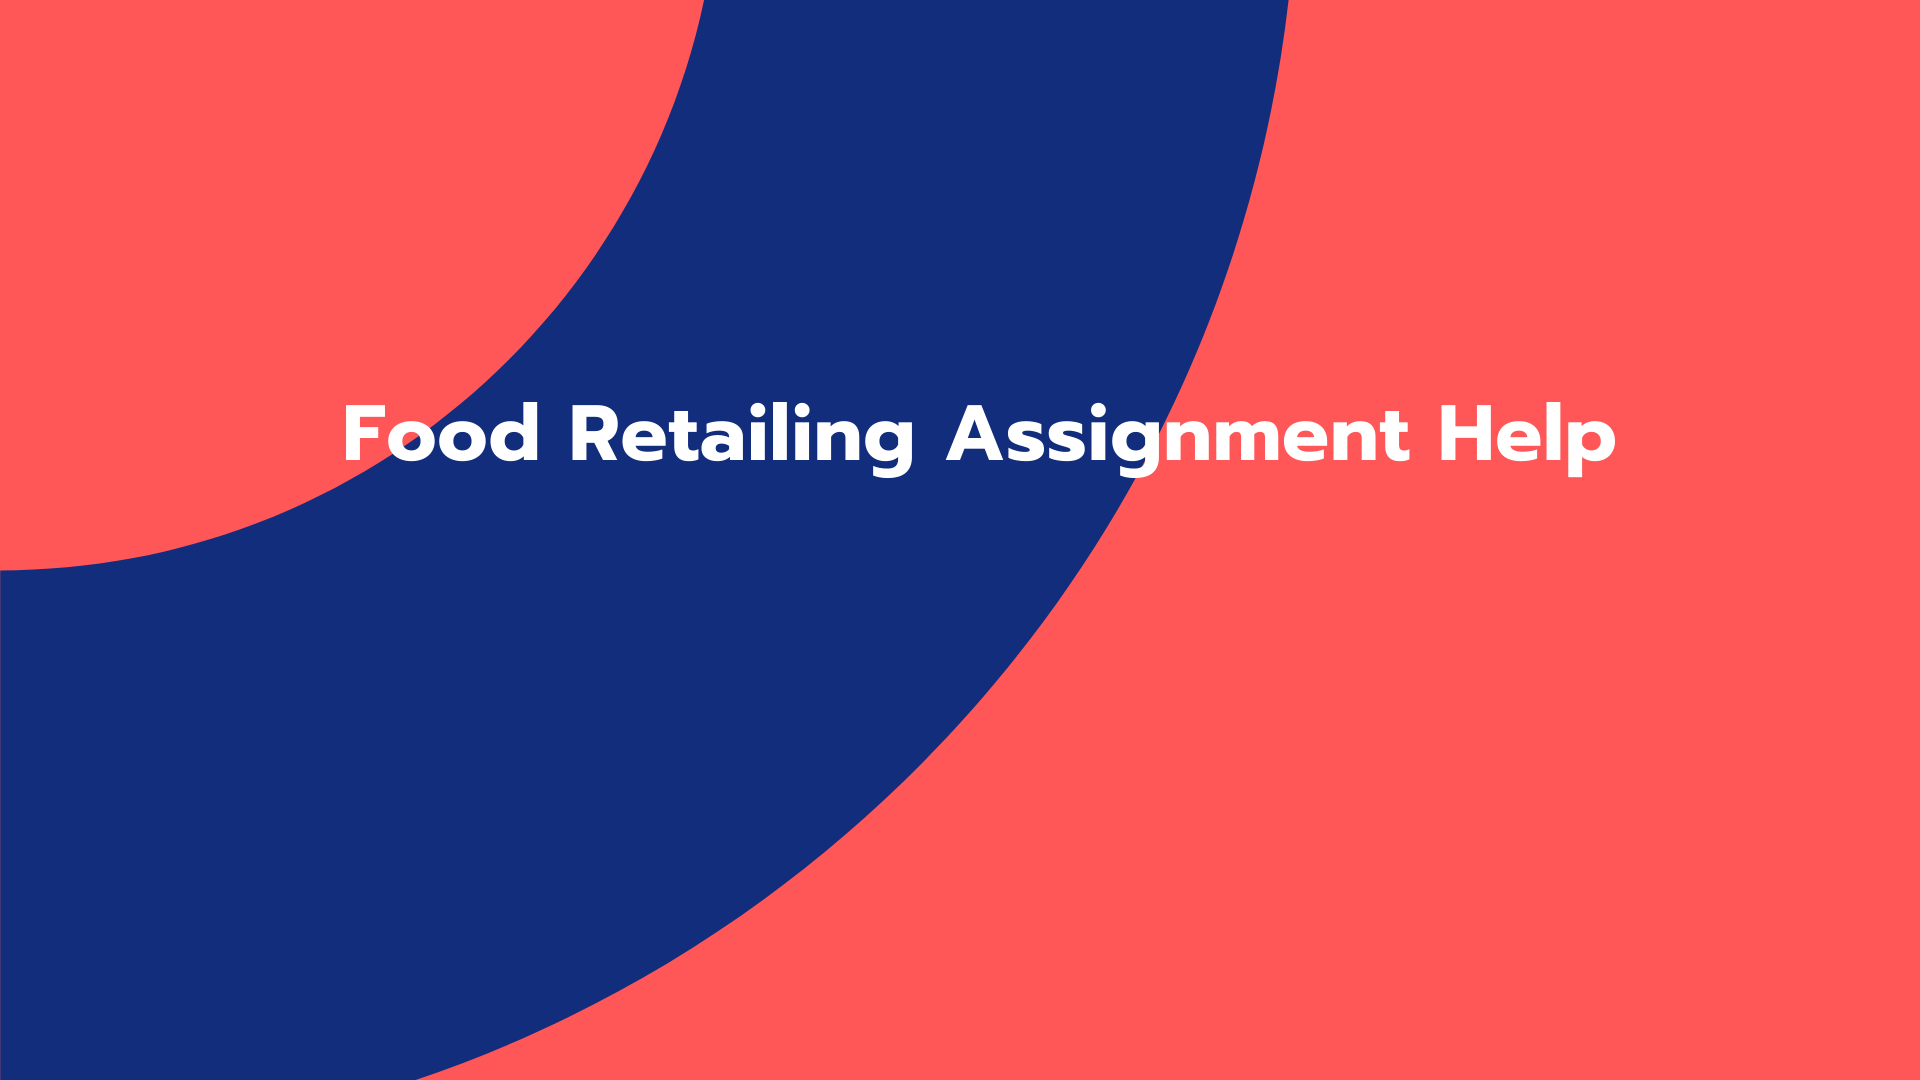 Food Retailing Assignment Help